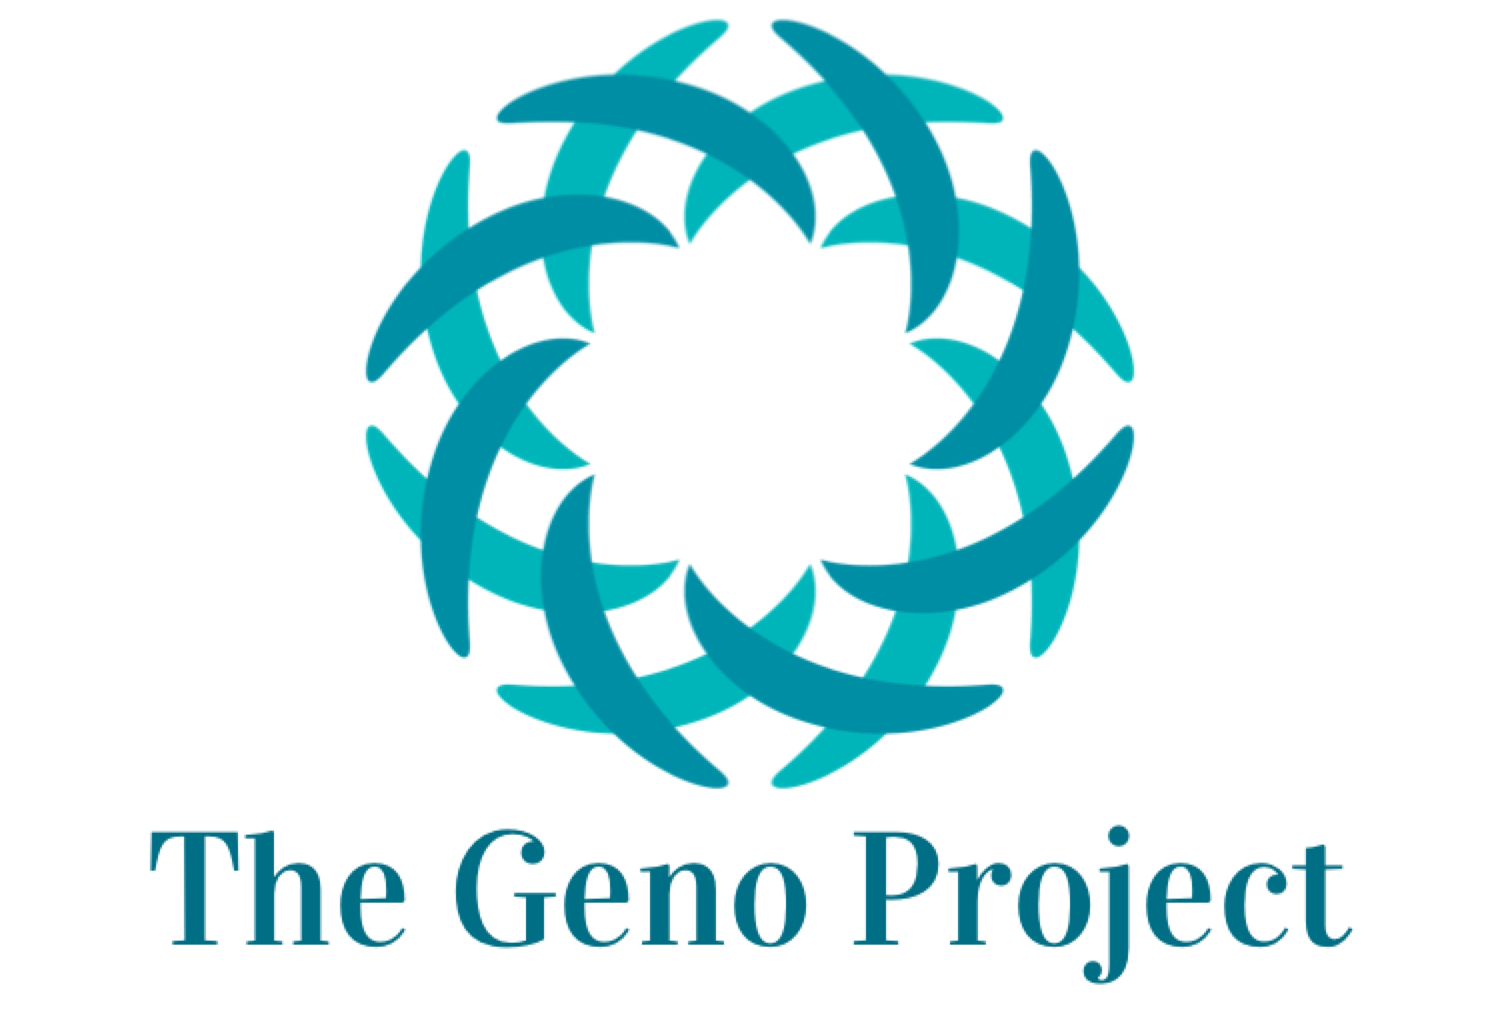 The Geno Project